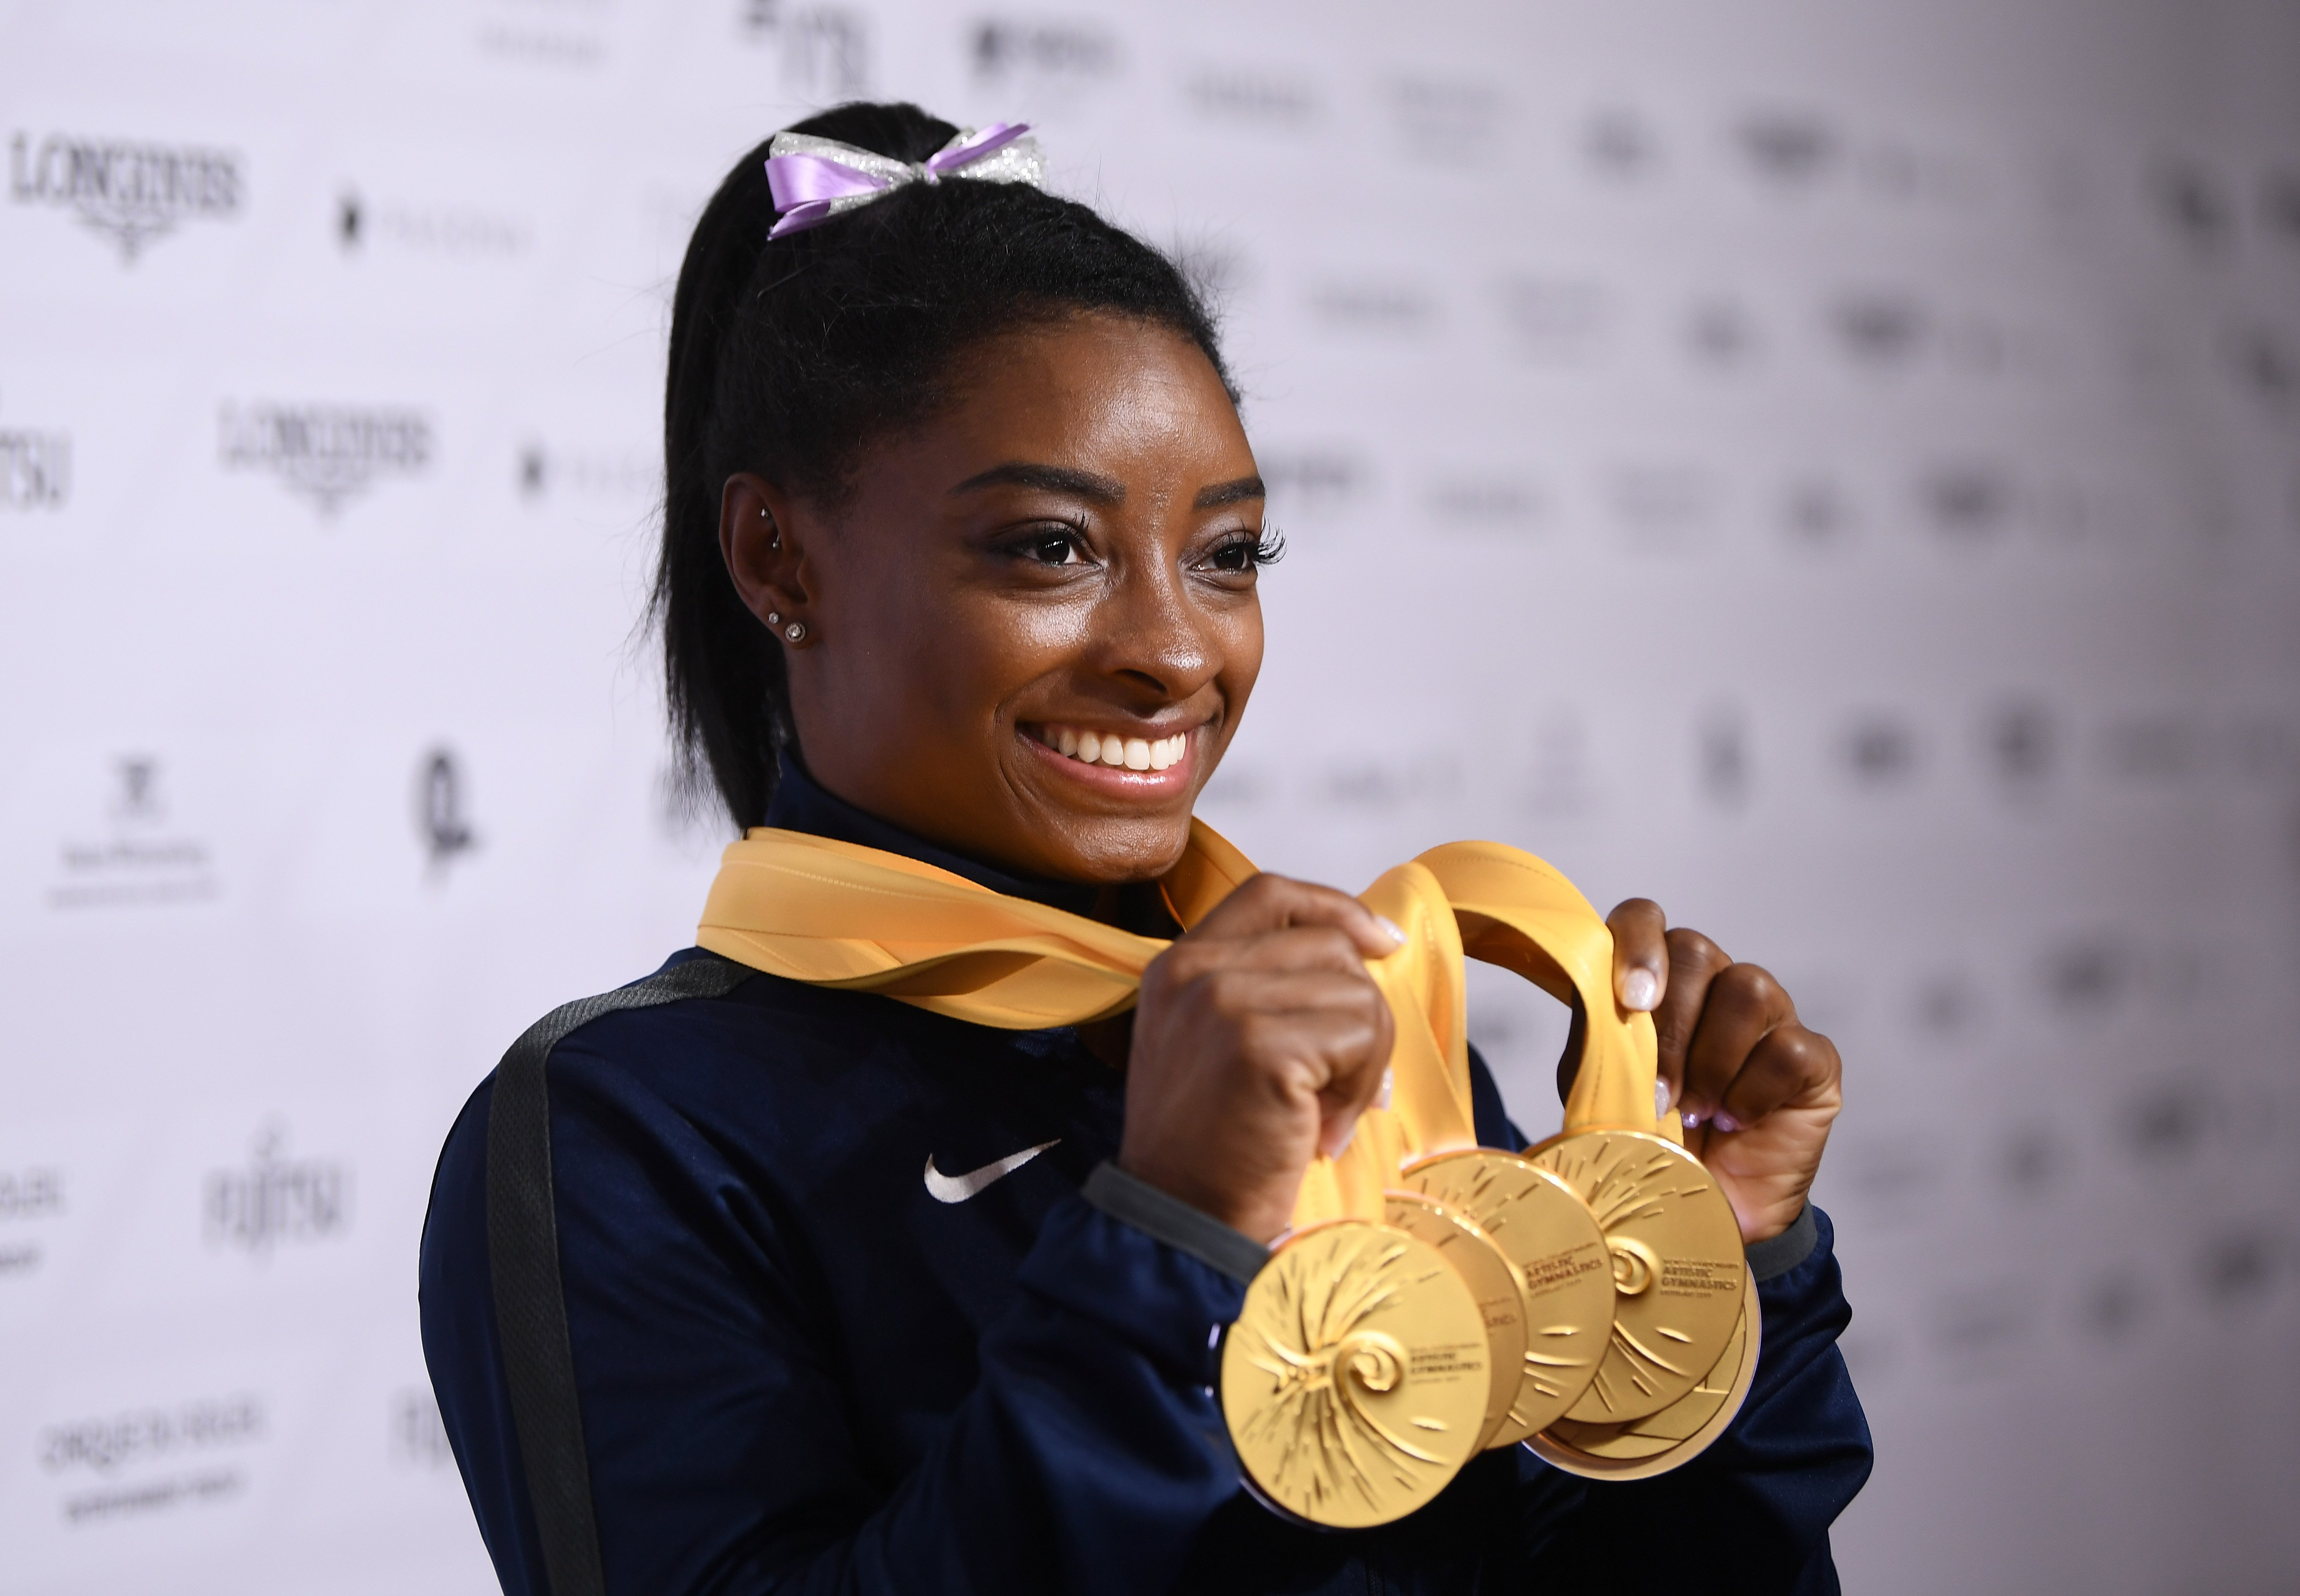 Simone Biles at the FIG Artistic Gymnastics World Championships at Hanns Martin Schleyer Hall on October 13, 2019 in Stuttgart, Germany. | Source: Getty Images